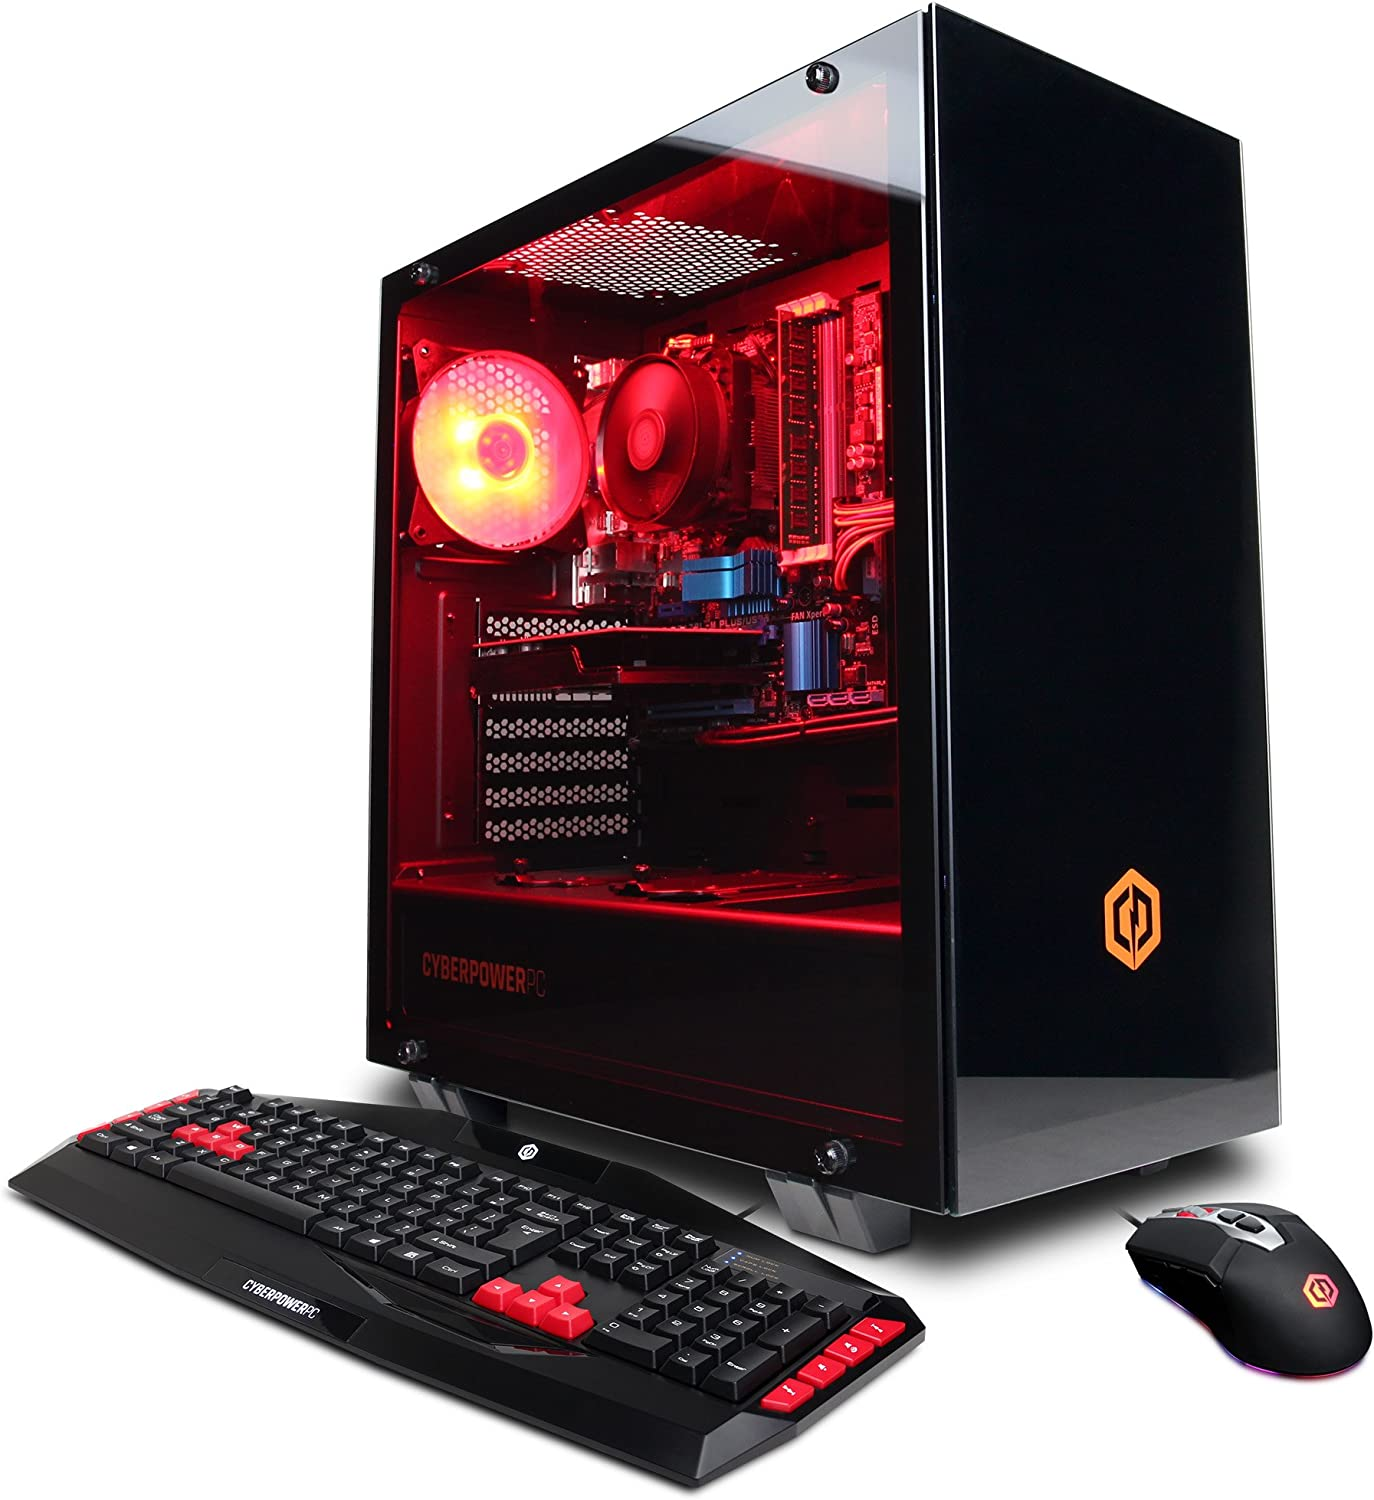 CyberpowerPC Gamer Ultra Gaming PC, AMD FX-6300 3.5GHz, AMD Radeon R7 240 2GB, 8GB DDR3, 1TB HDD, WiFi Ready & Win 10 Home (GUA884, Black)